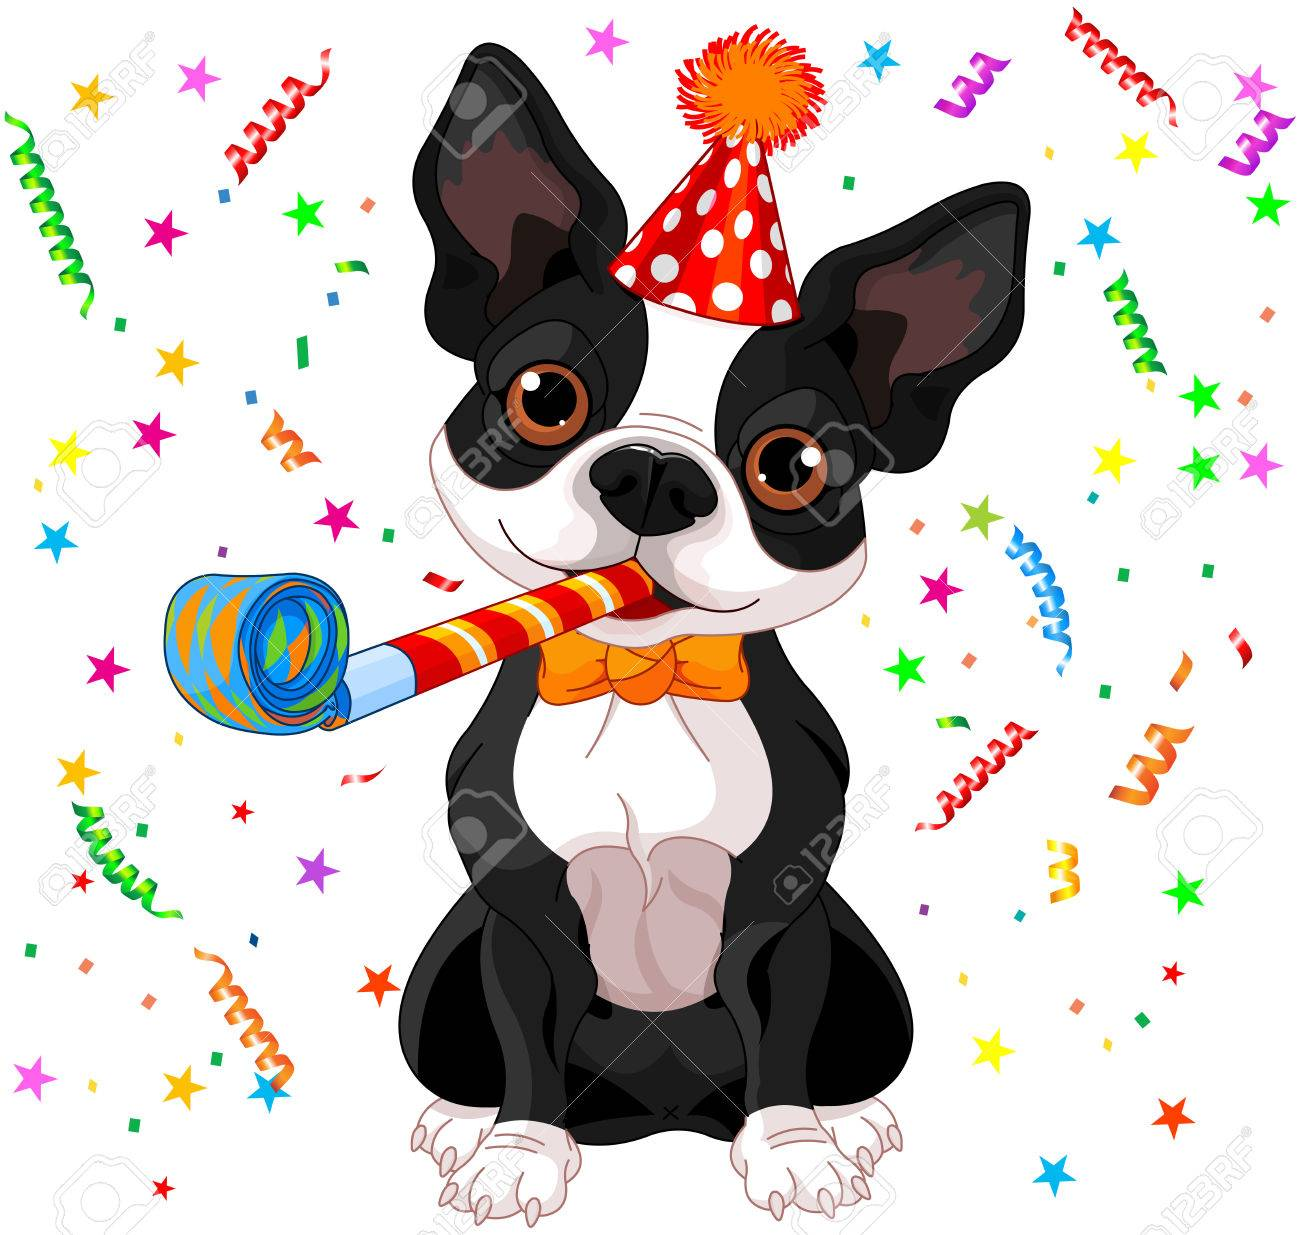 socialisation - Comment bien le socialiser?  - Page 4 35588778-illustration-of-cute-boston-terrier-celebrating